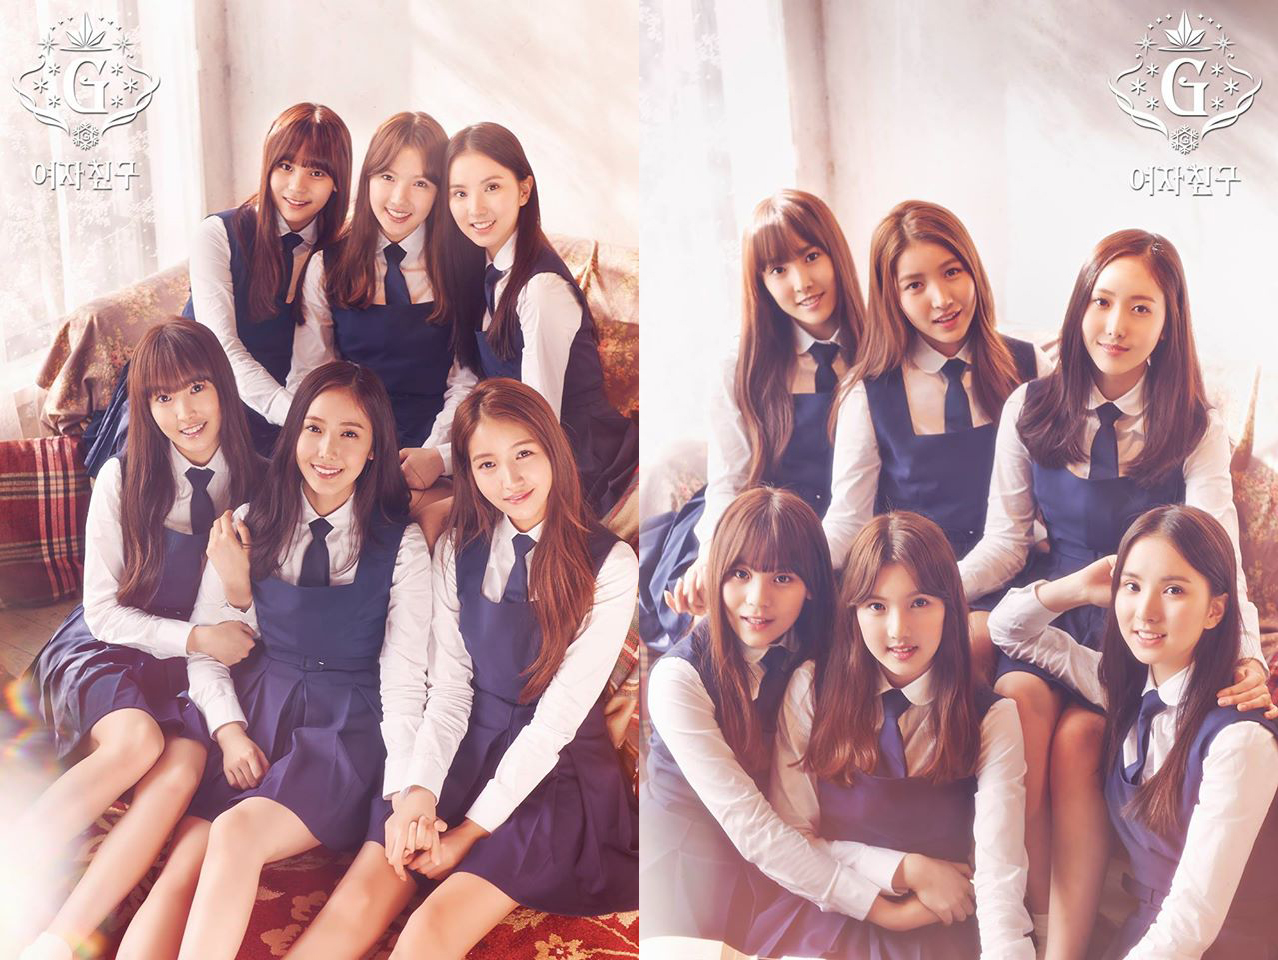 Updated: GFRIEND Gears Up for Comeback With Mysterious Wintry Teaser Photo